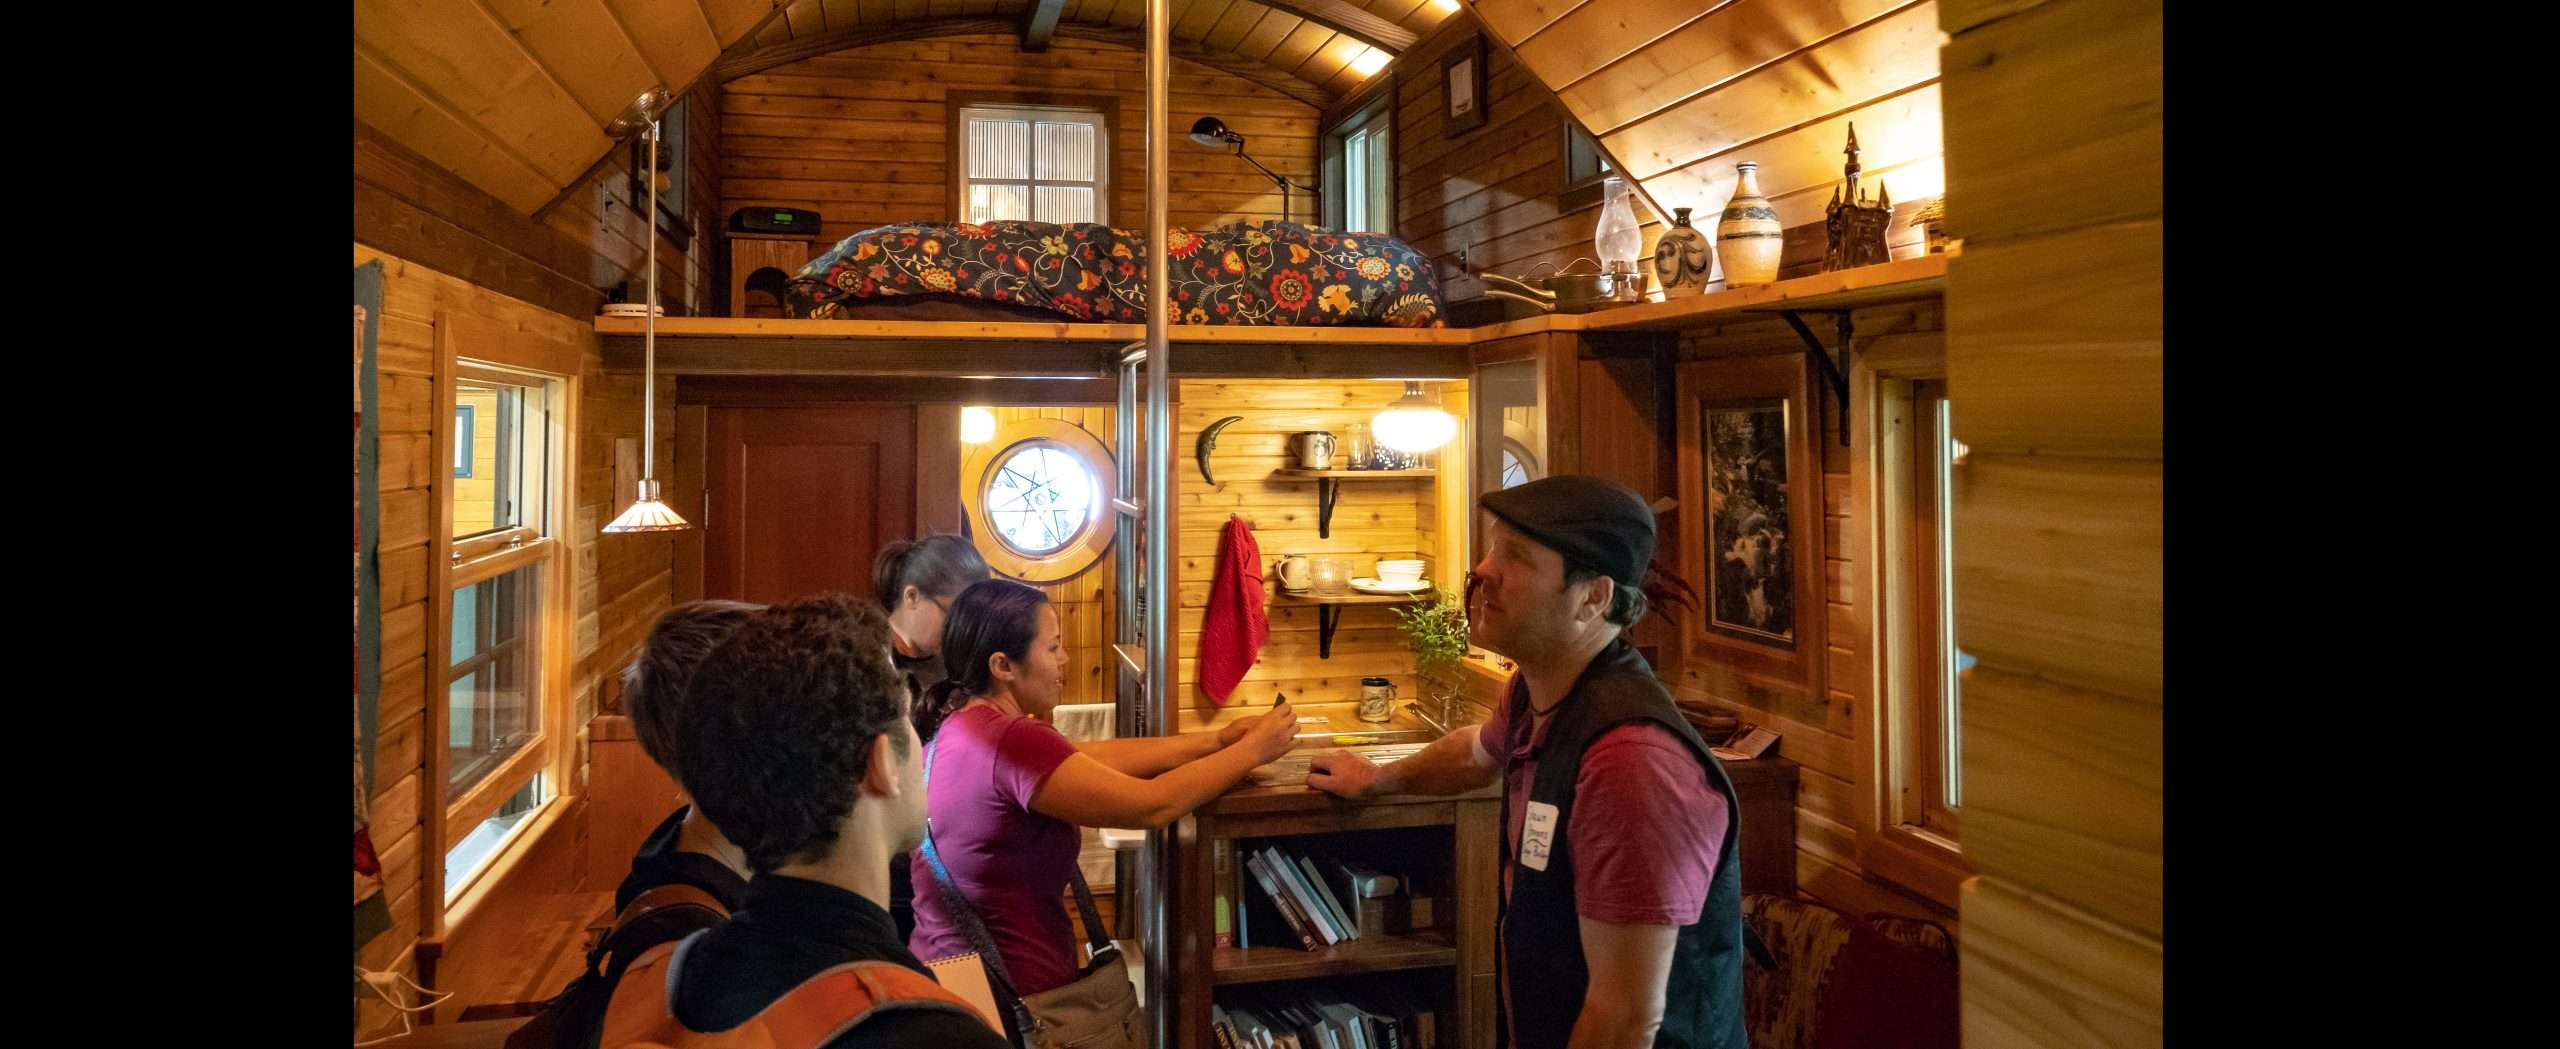 people talking inside of a tiny home. The interior has a lot of wood and it is very inviting and warm